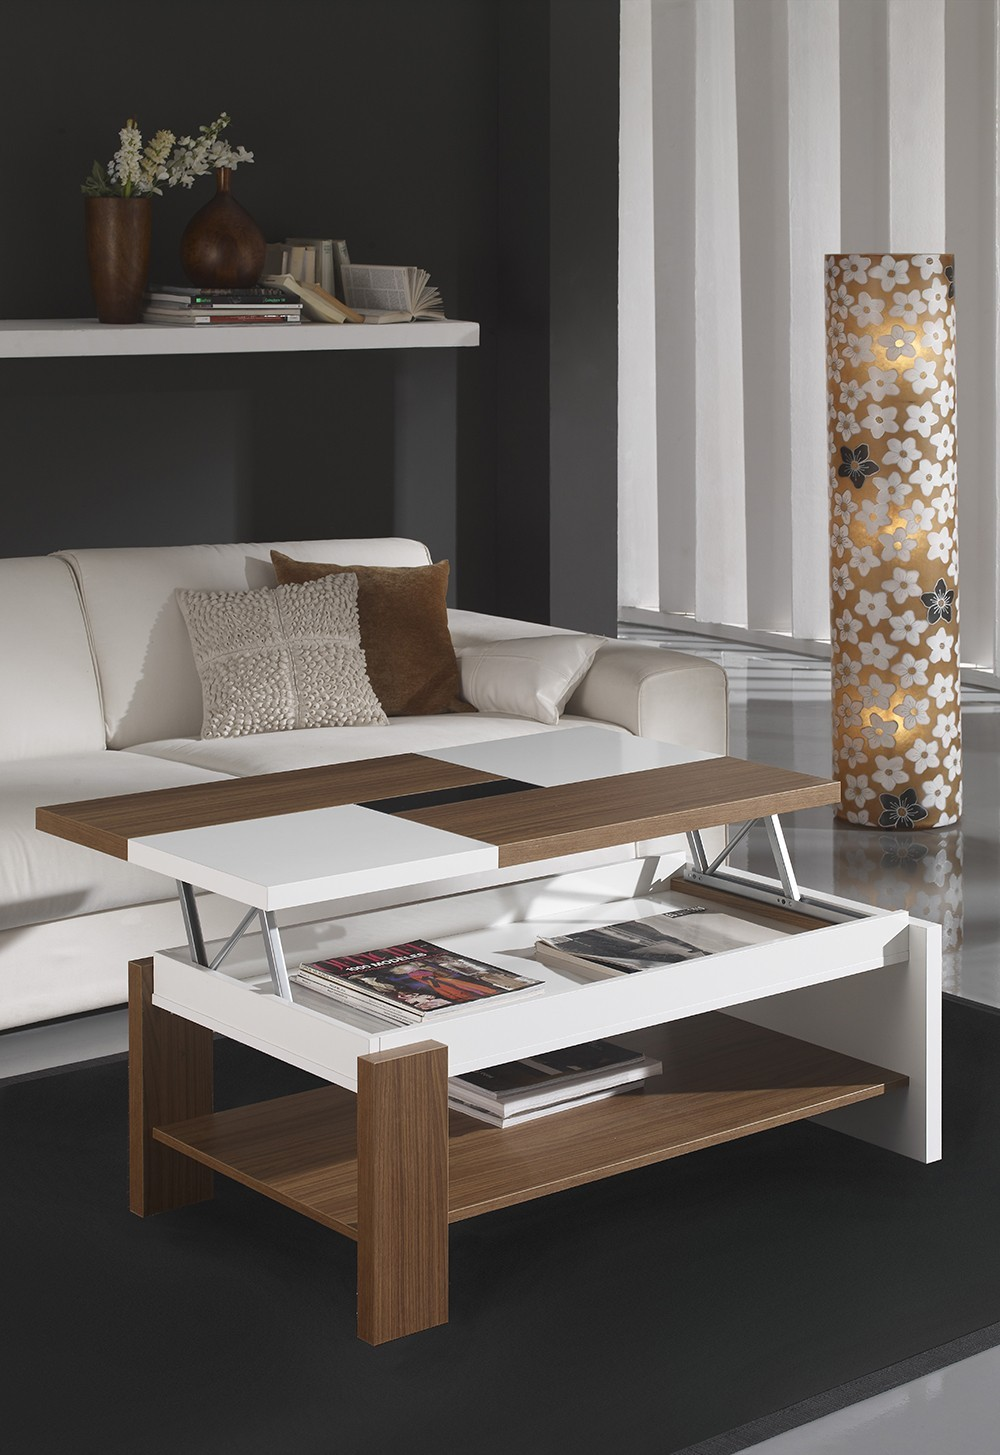 Table basse relevable contemporaine FABIO, coloris Noyer & Blanc